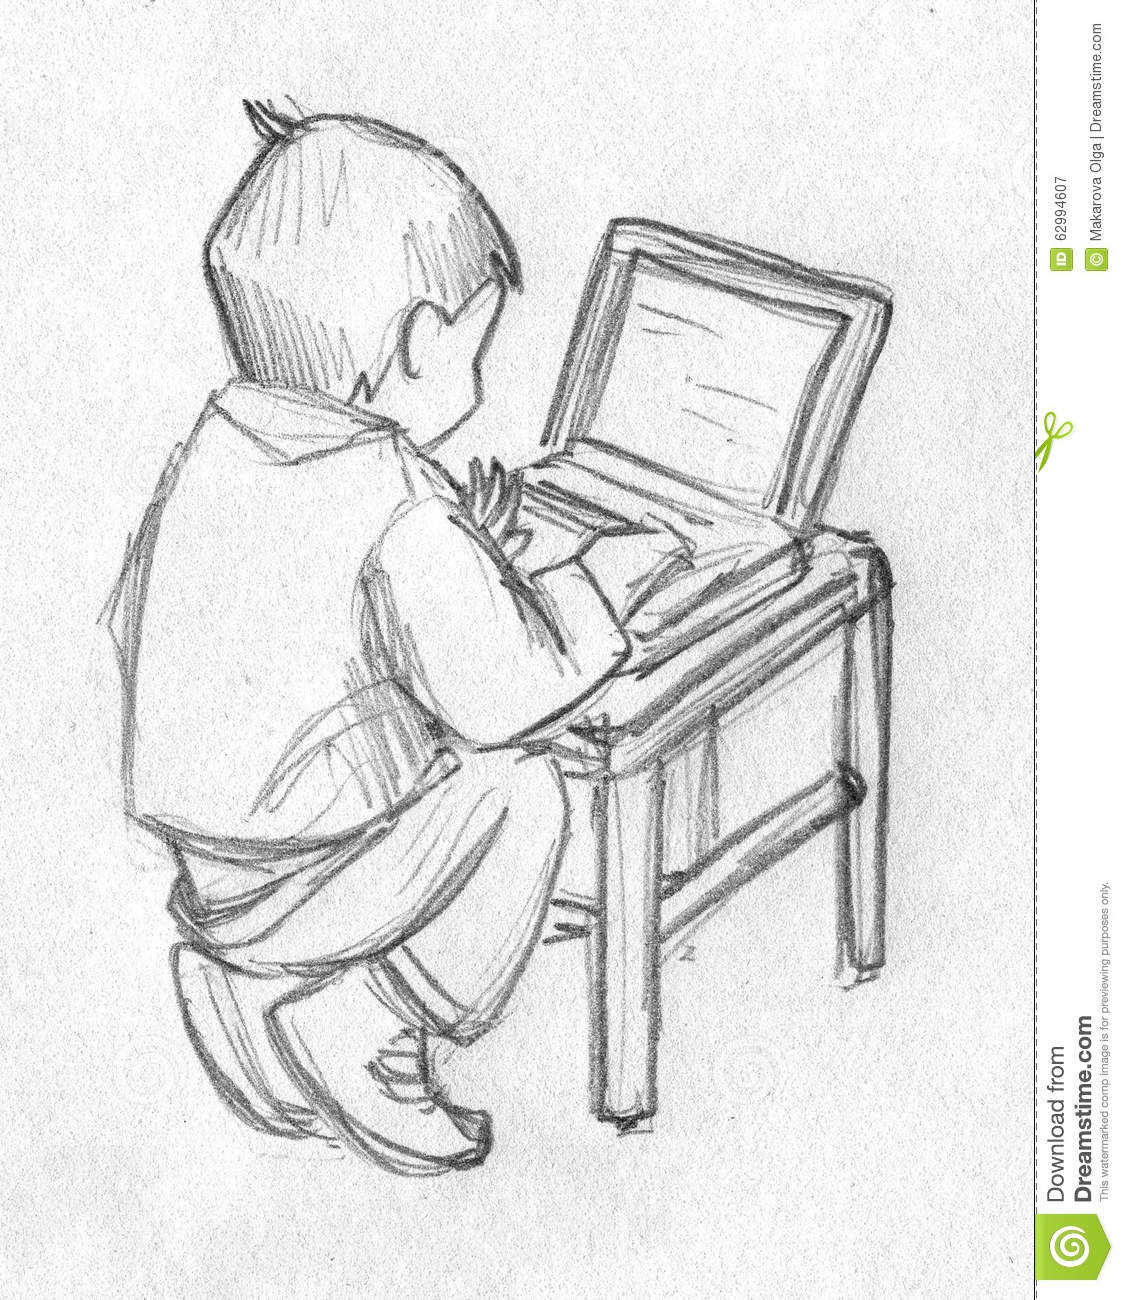 Sketch of a kid using computer